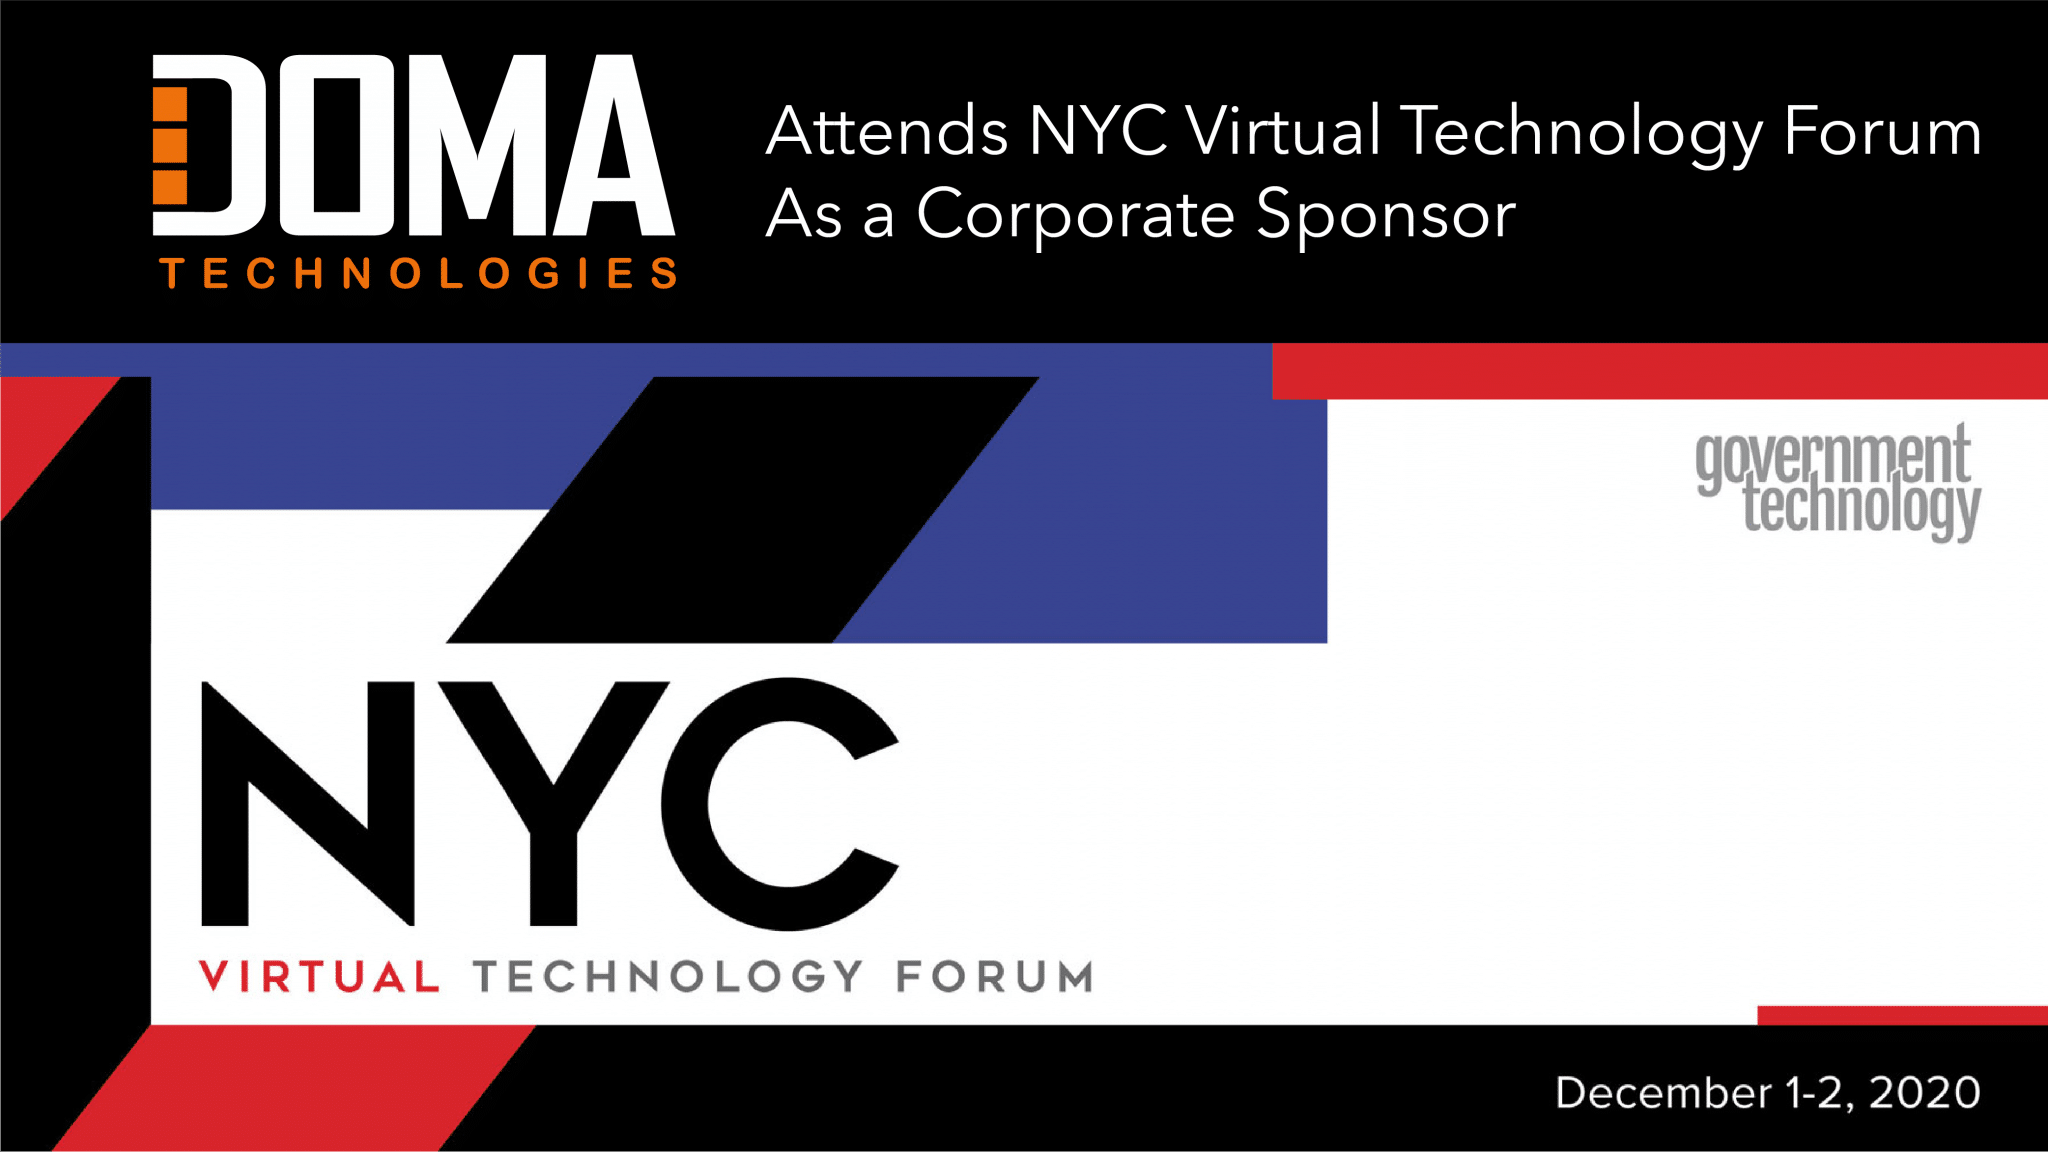 NYC Virtual Technology Forum